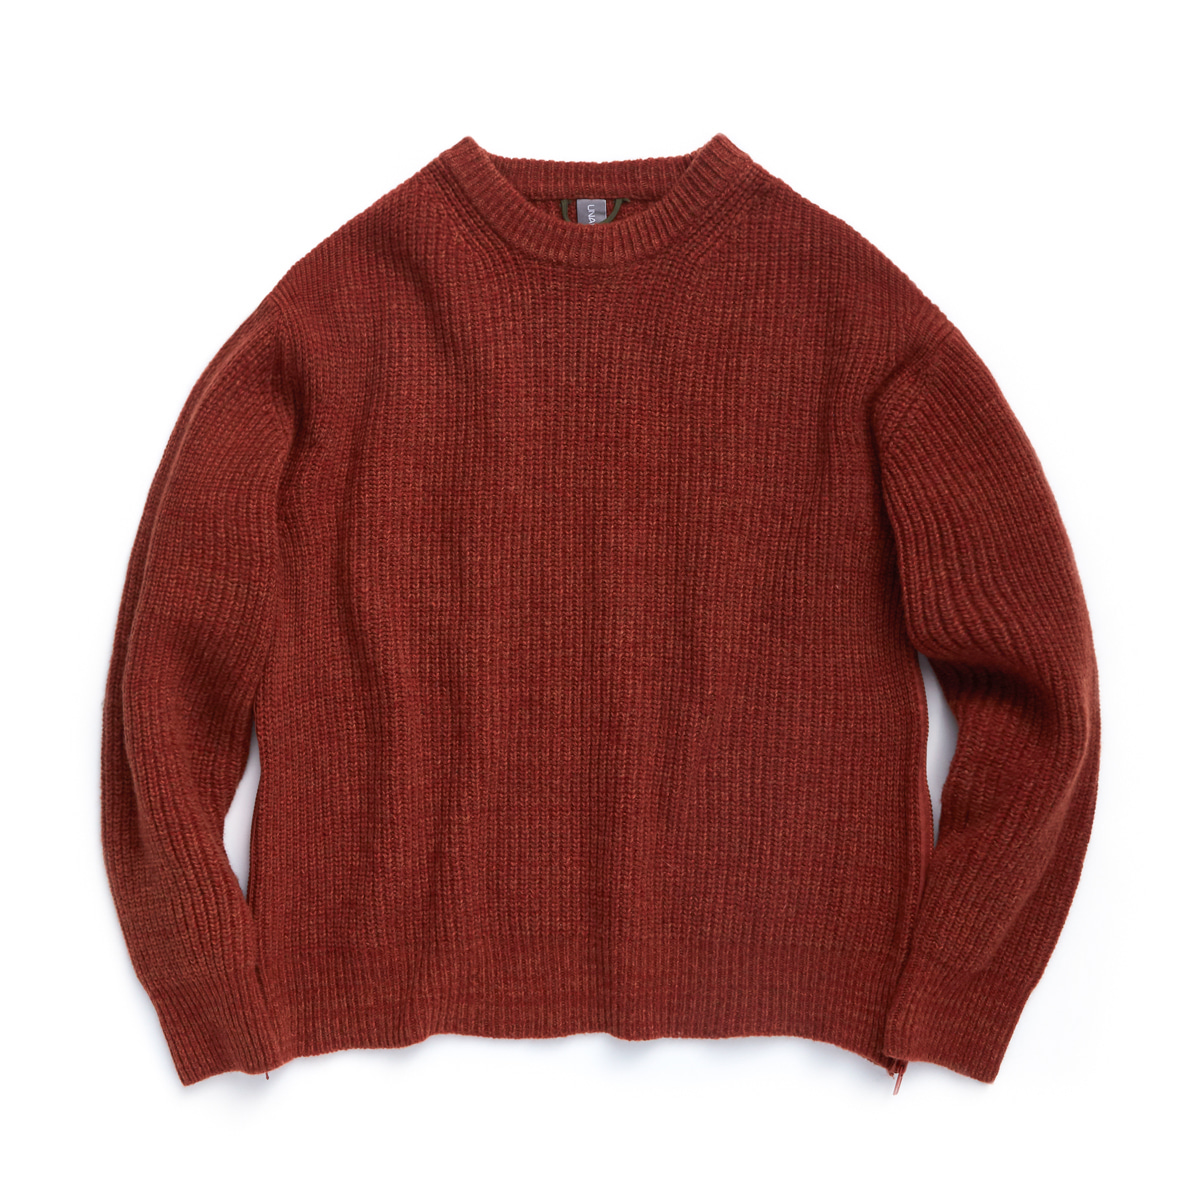 언어펙티드 OVERSIZED CREWNECK KNIT (Burnt Orange Melange)